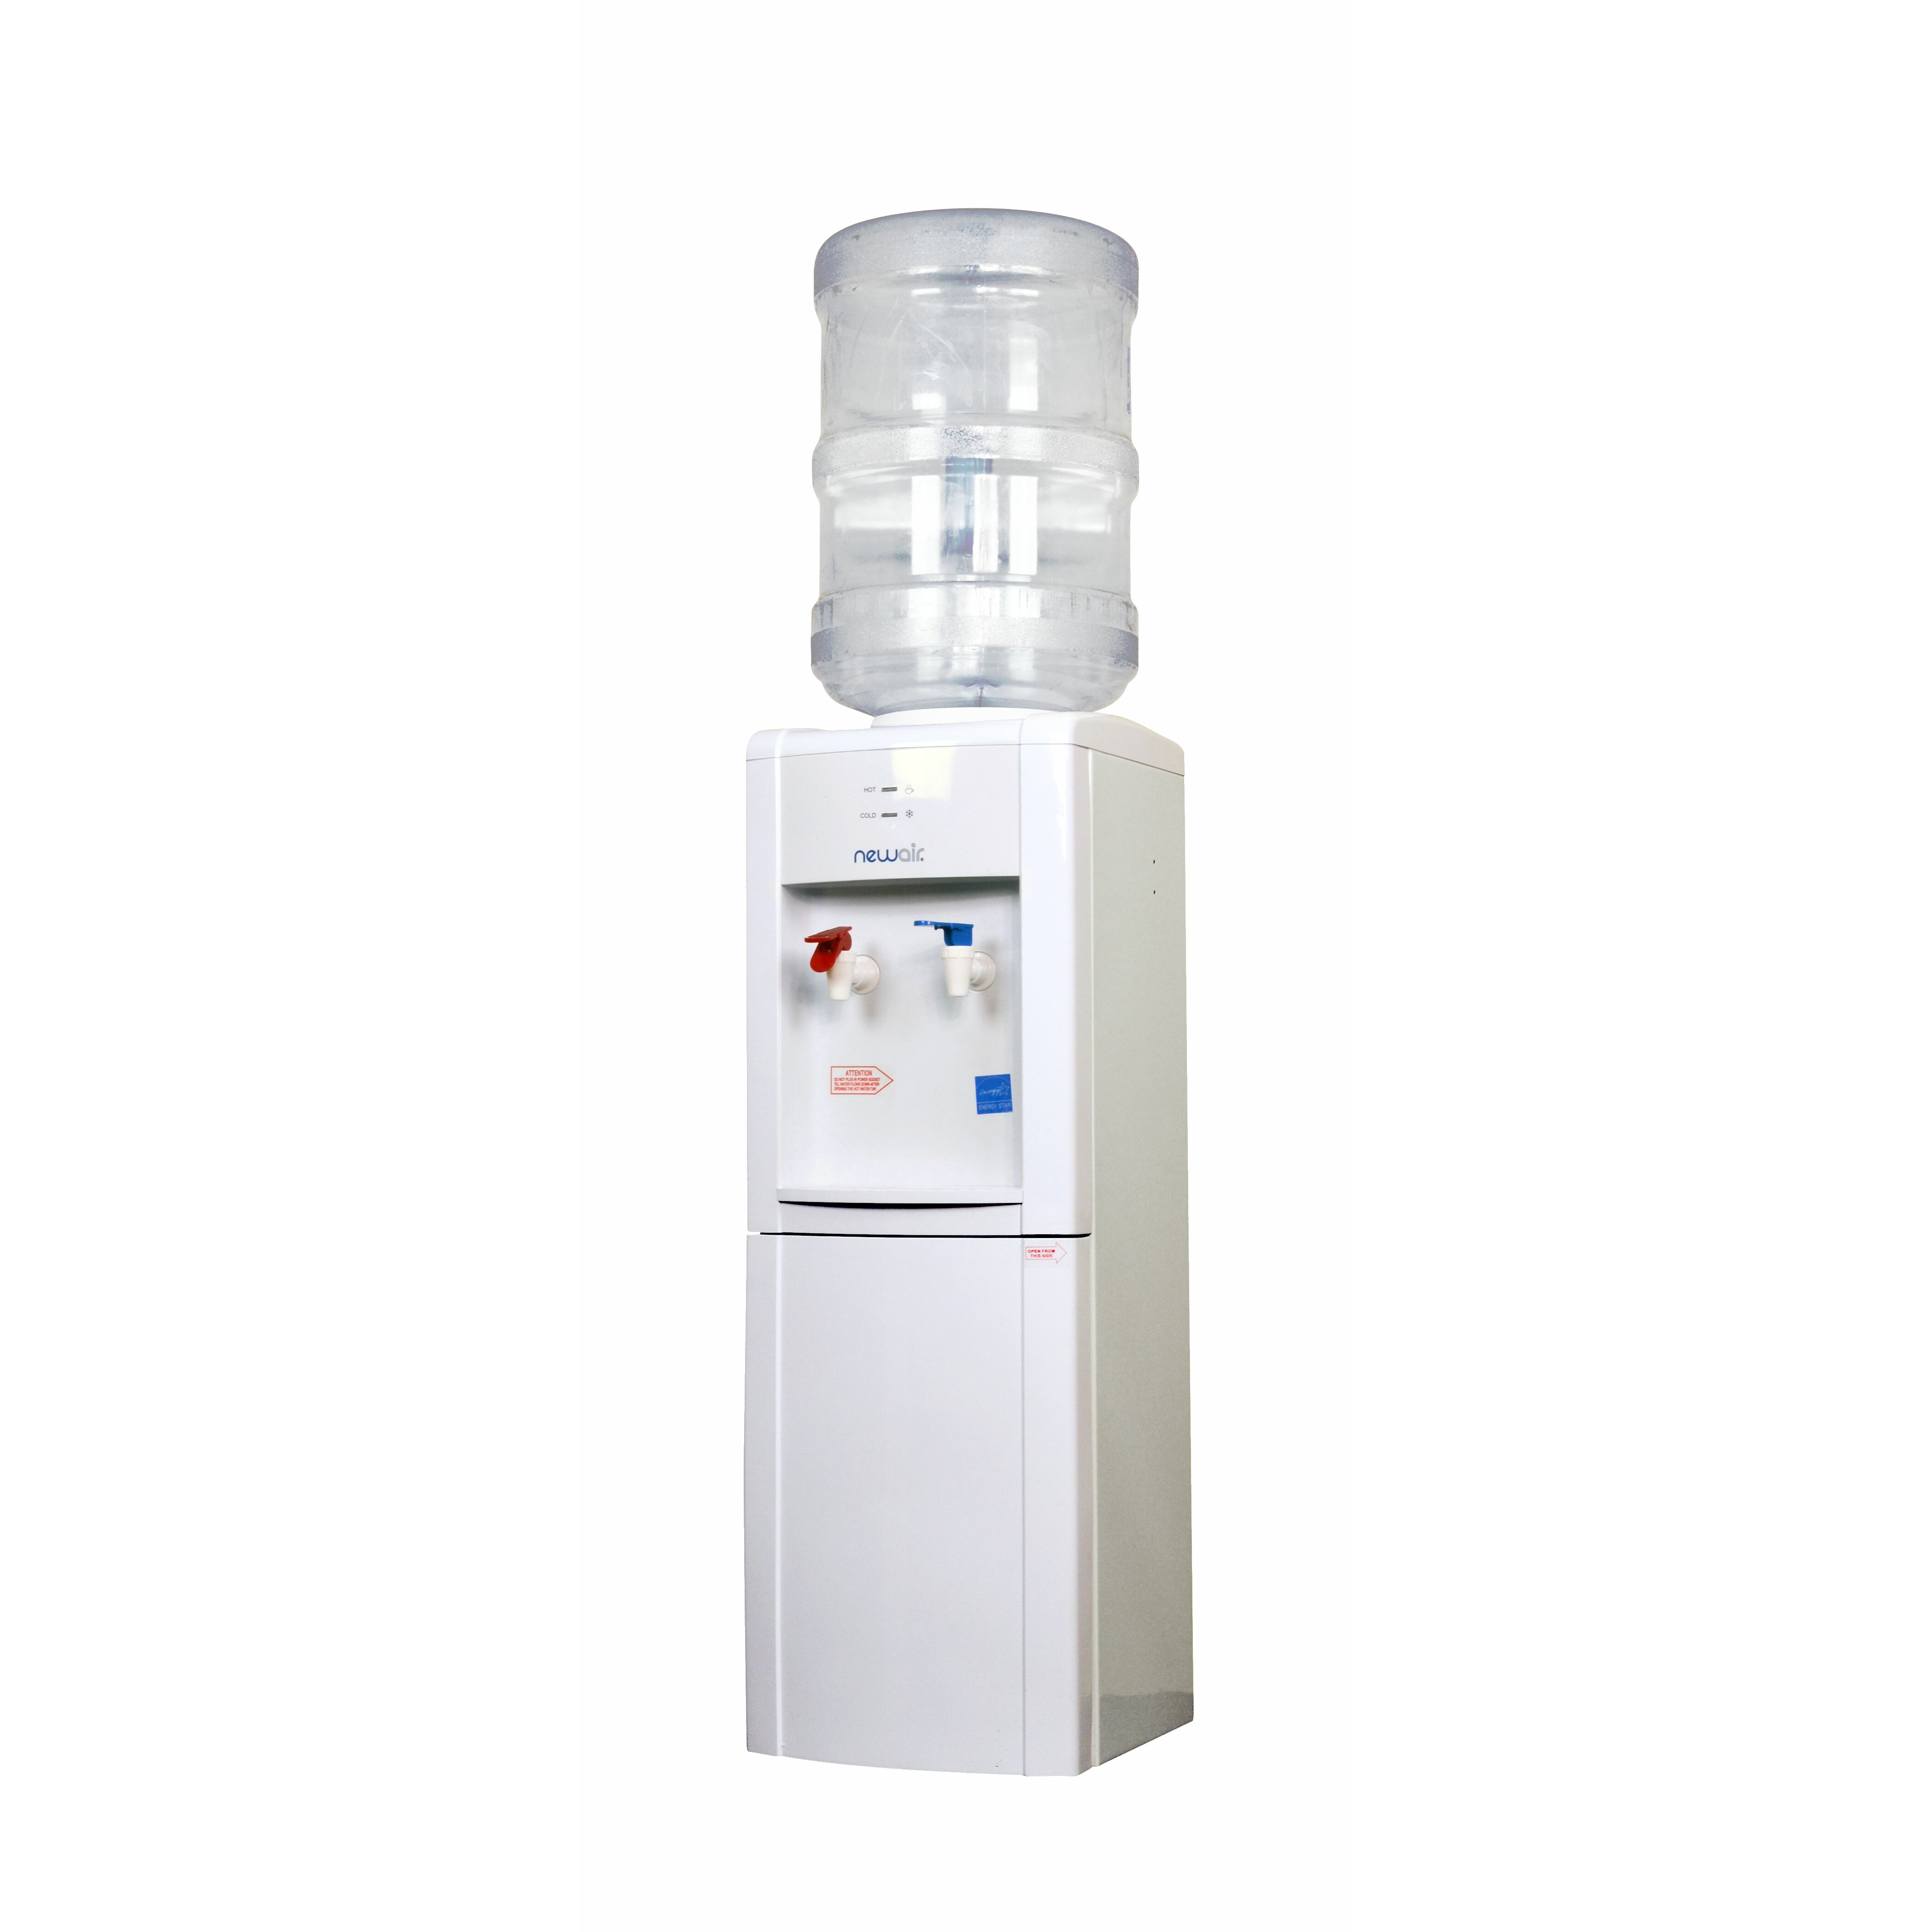 Newair Free Standing Hot And Cold Water Cooler Amp Reviews